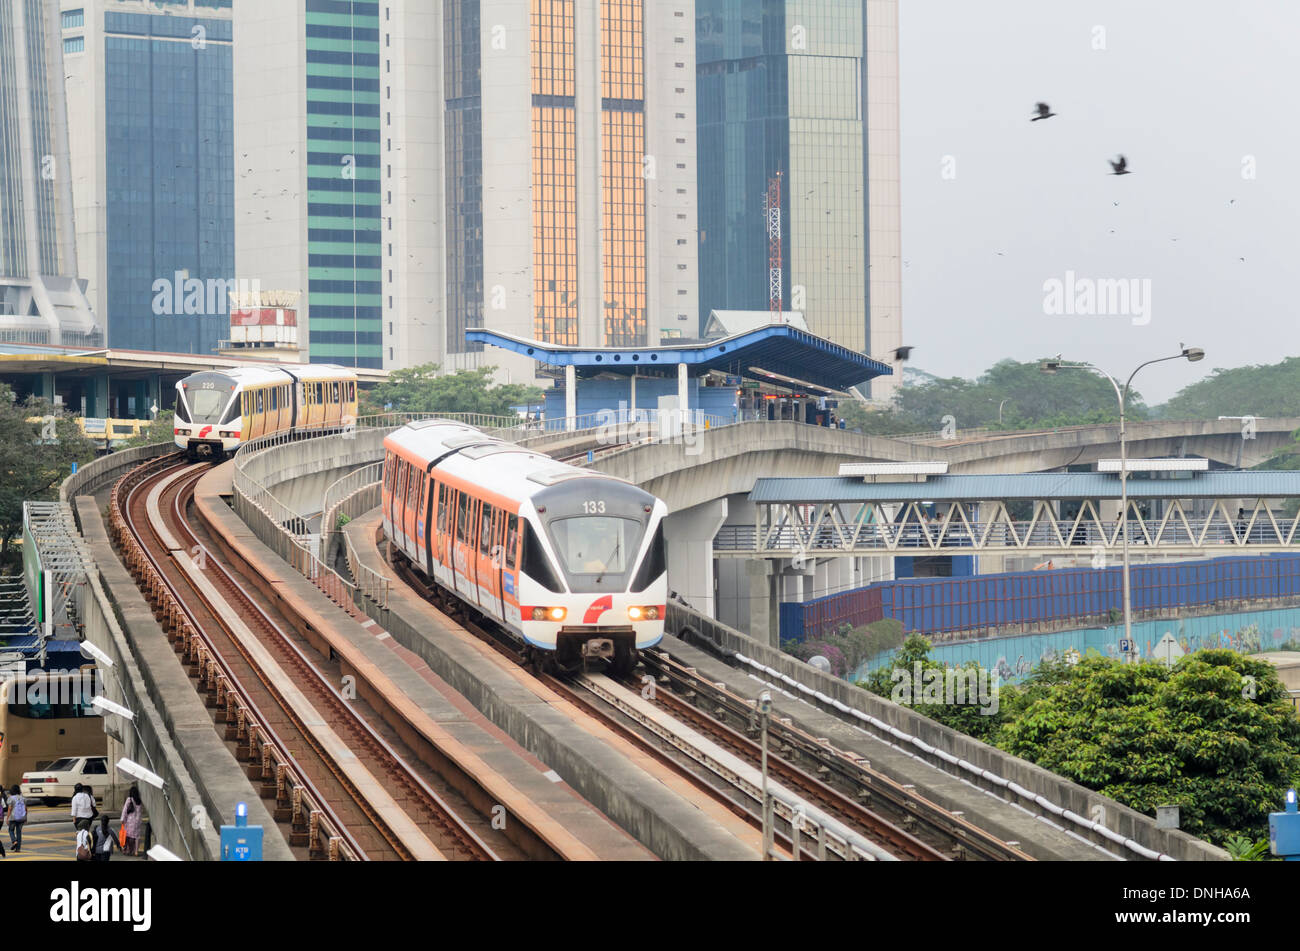 Modern Asian transport infrastructure: driverless commuter trains, elevated tracks and station Stock Photo